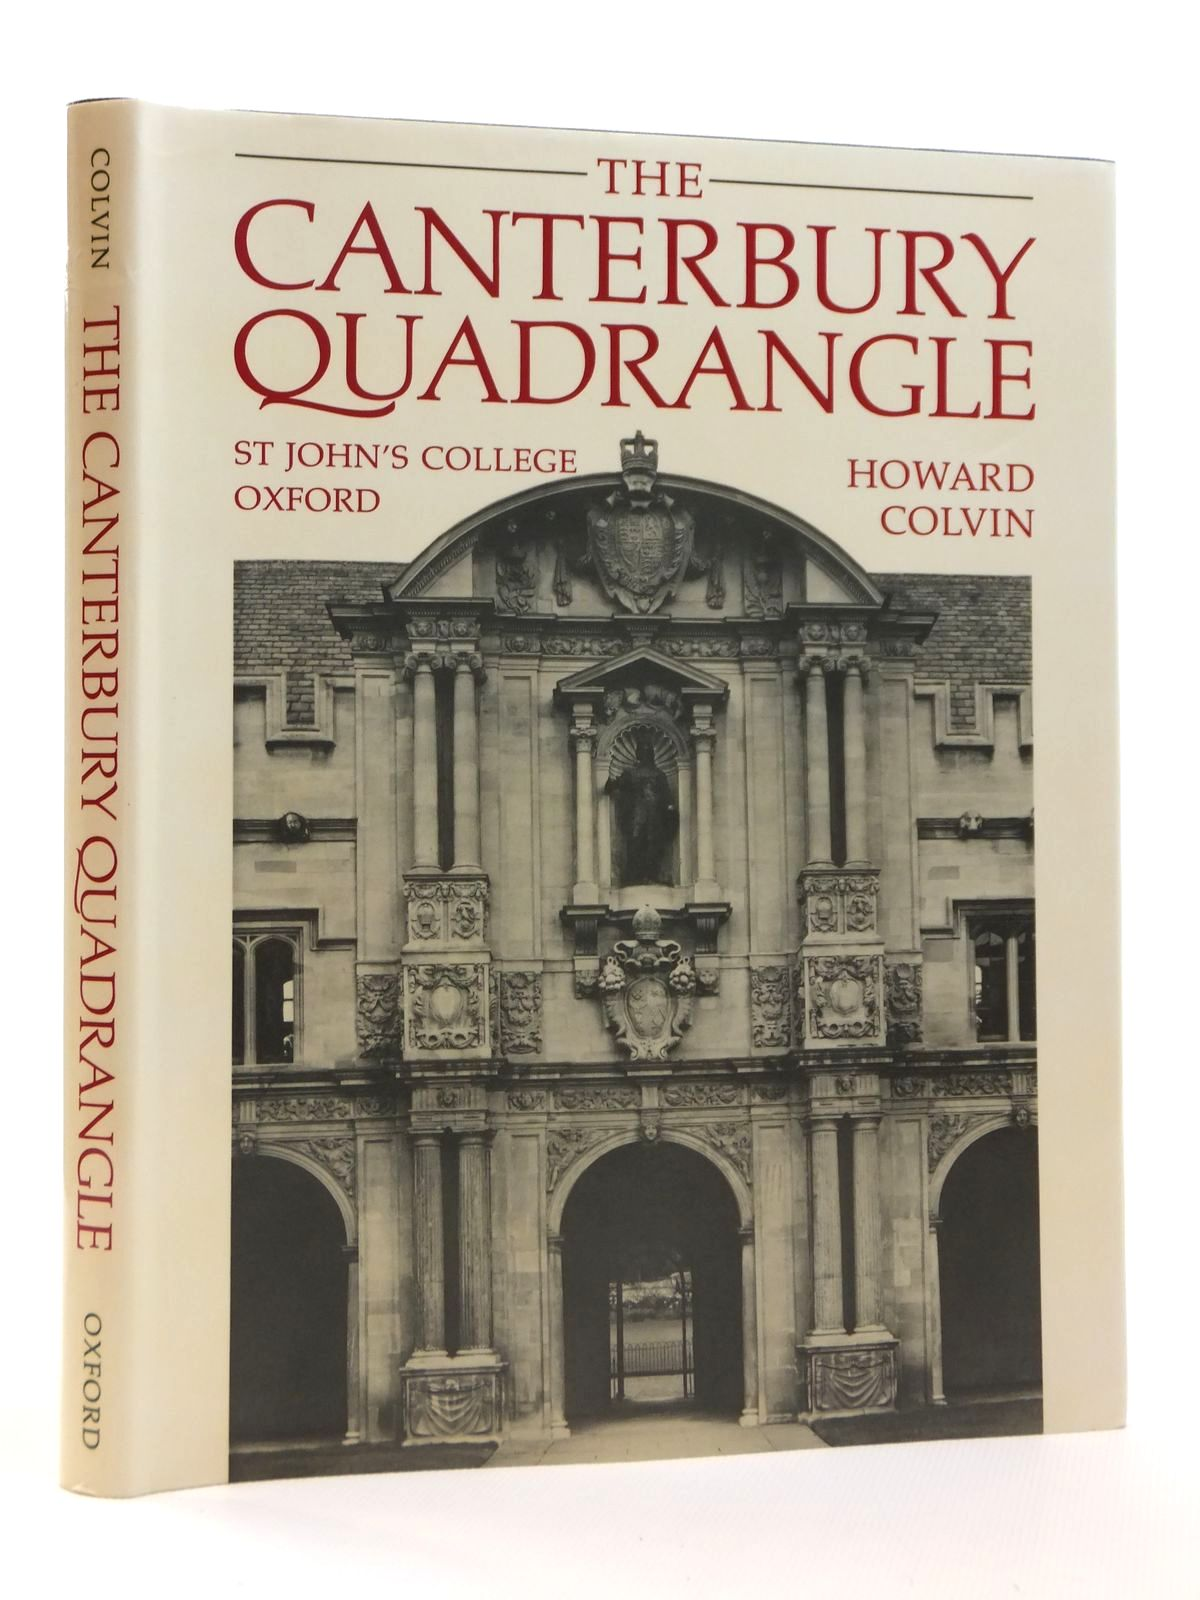 Photo of THE CANTERBURY QUADRANGLE ST JOHN'S COLLEGE OXFORD- Stock Number: 1608217